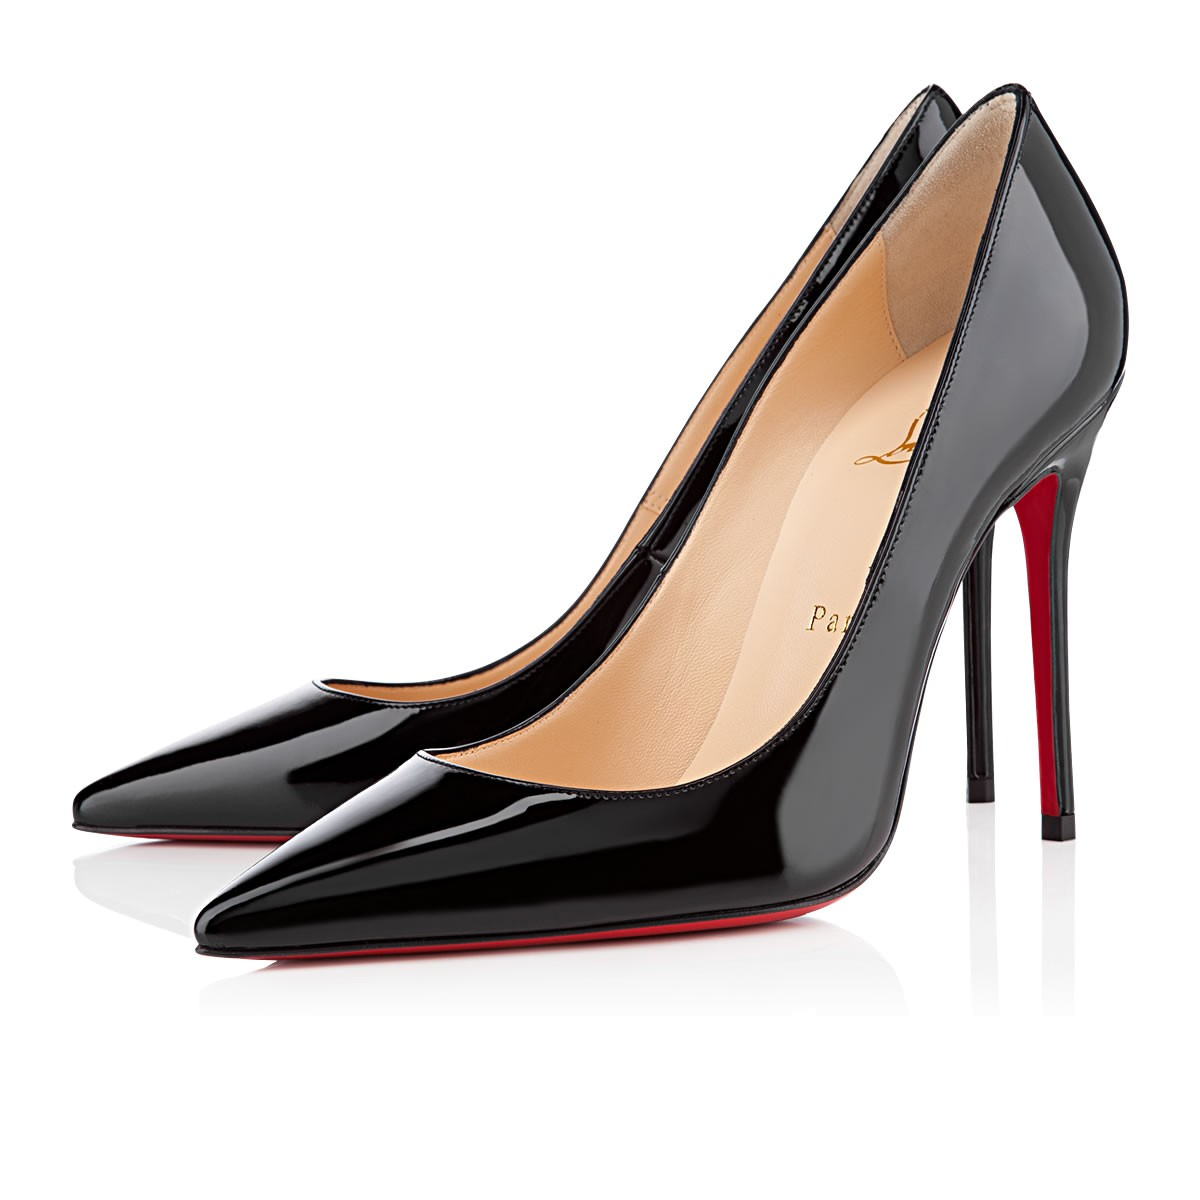 Shoes - Decollete 554 - Christian Louboutin ...